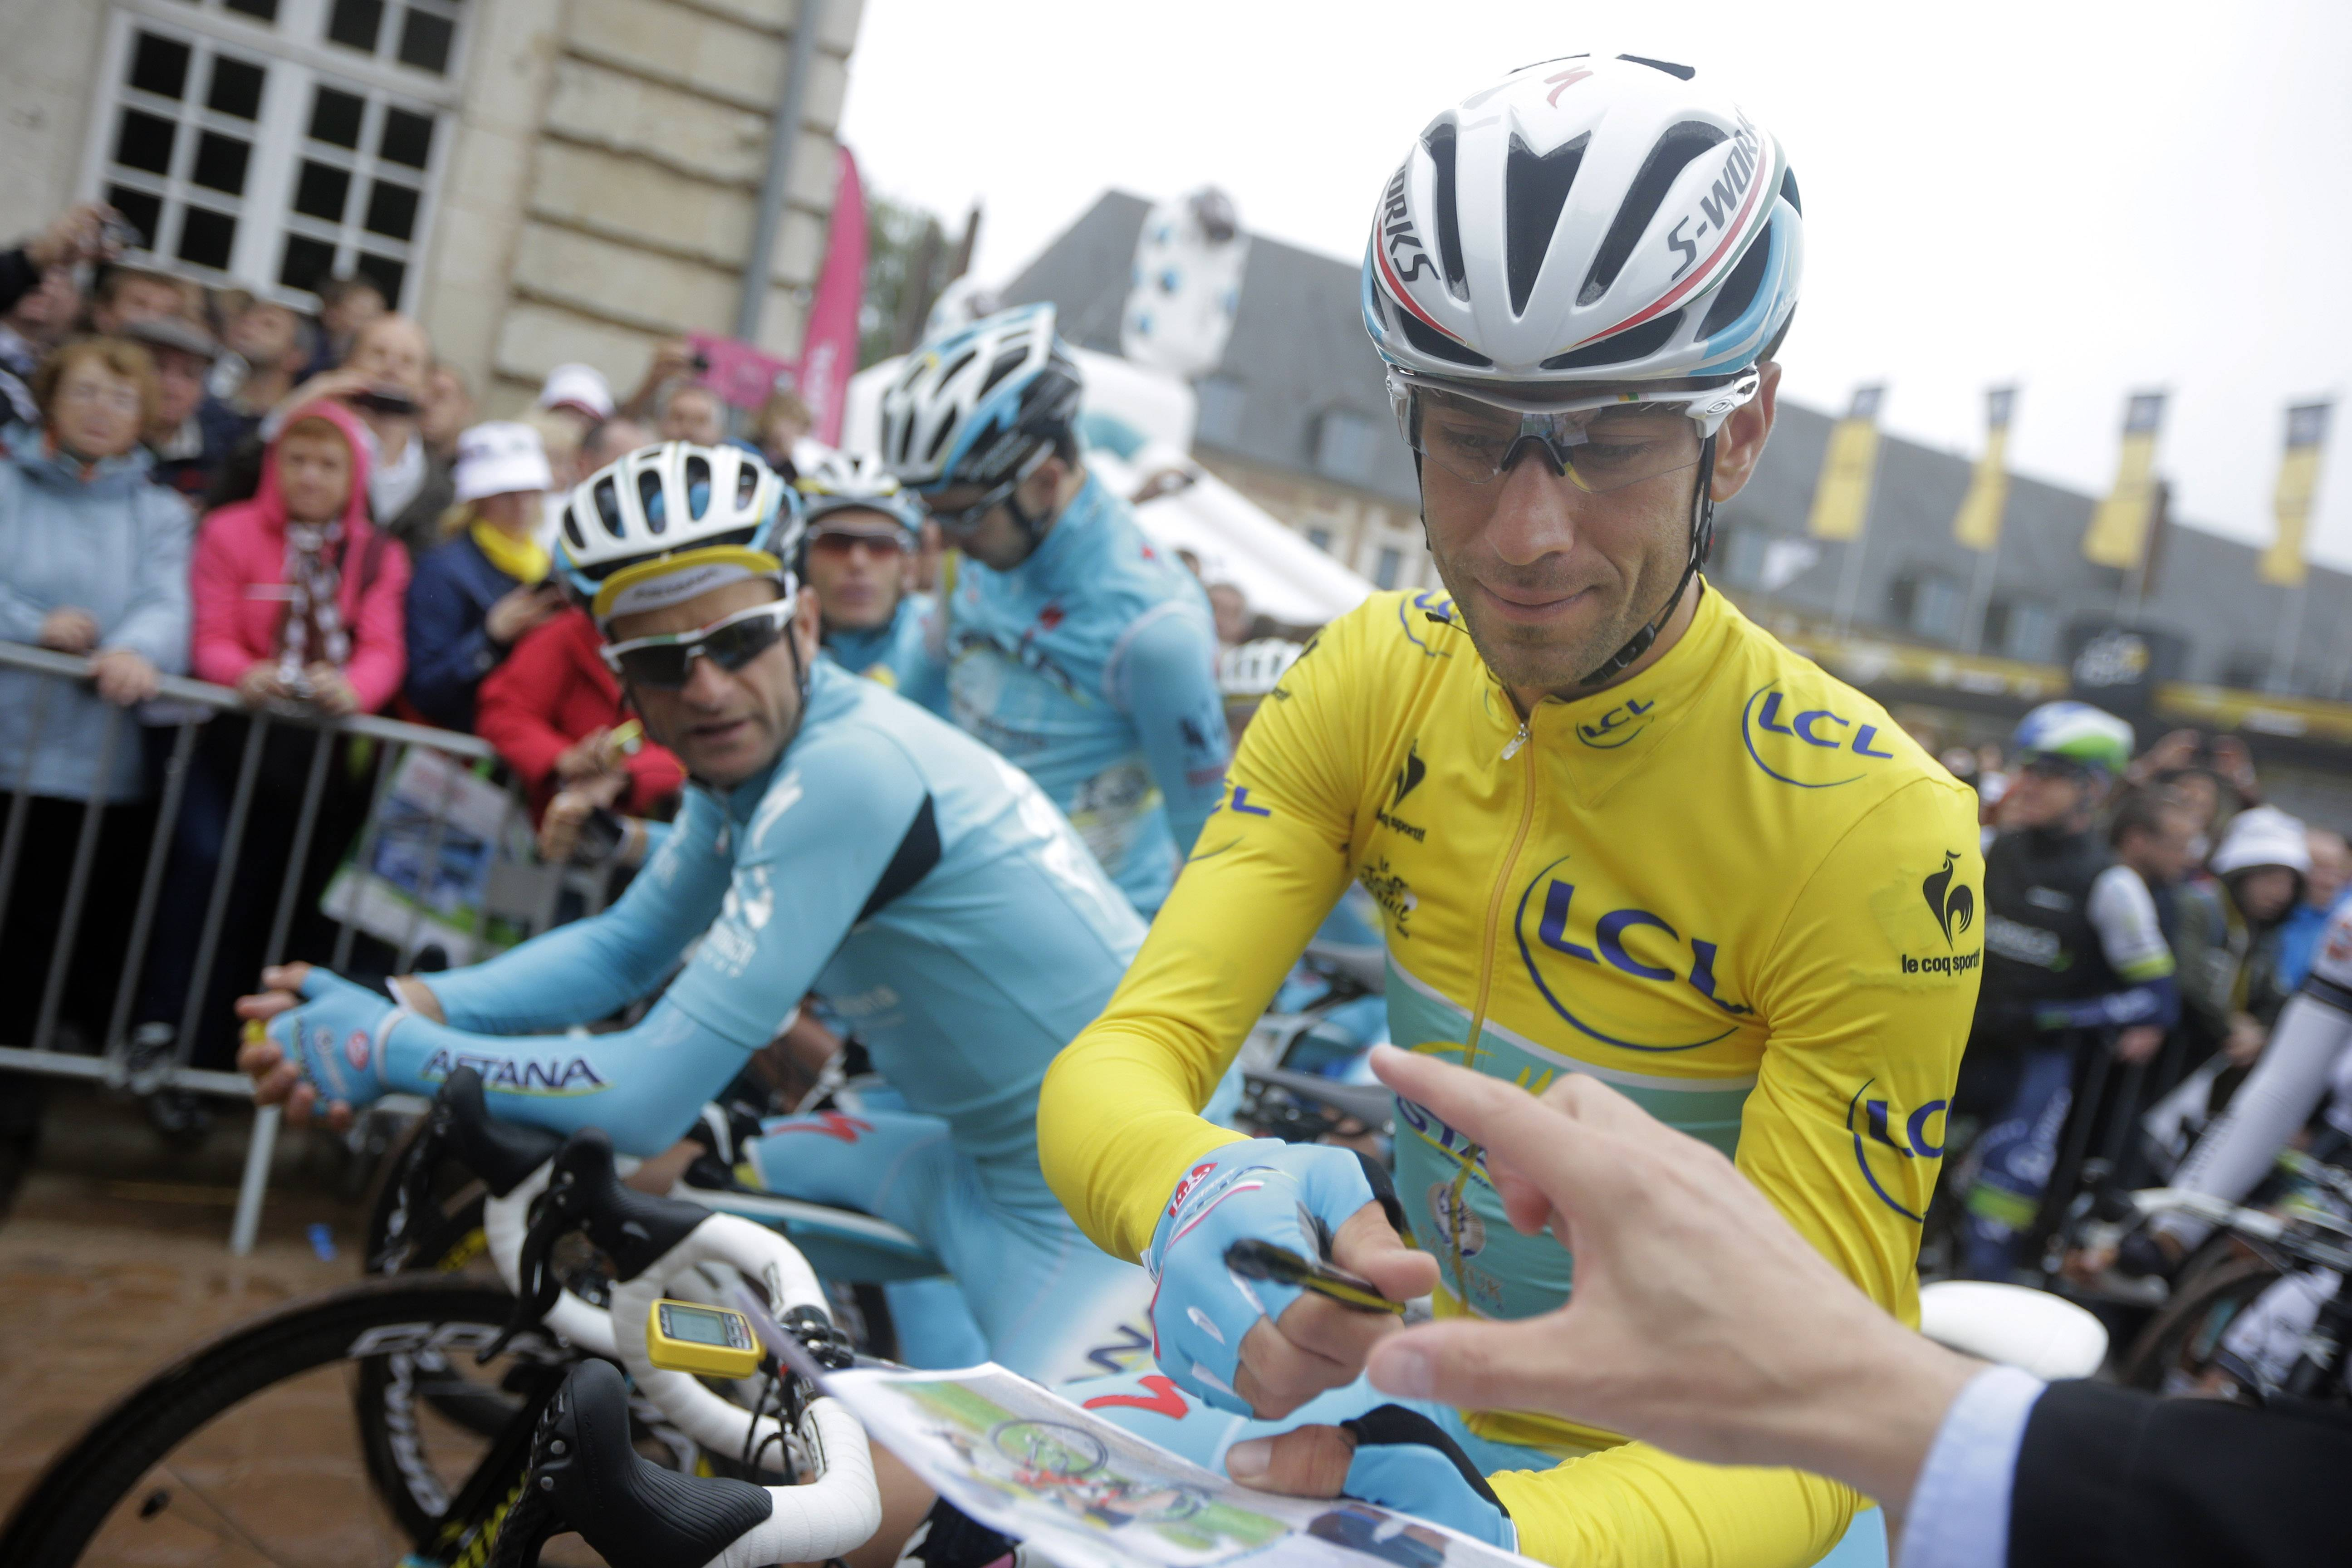 Italy's Vincenzo Nibali, wearing the overall leader's yellow jersey, signs autographs prior to the start of the sixth stage of the Tour de France cycling race over 194 kilometers (120.5 miles) with start in Arras and finish in Reims, France, Thursday.